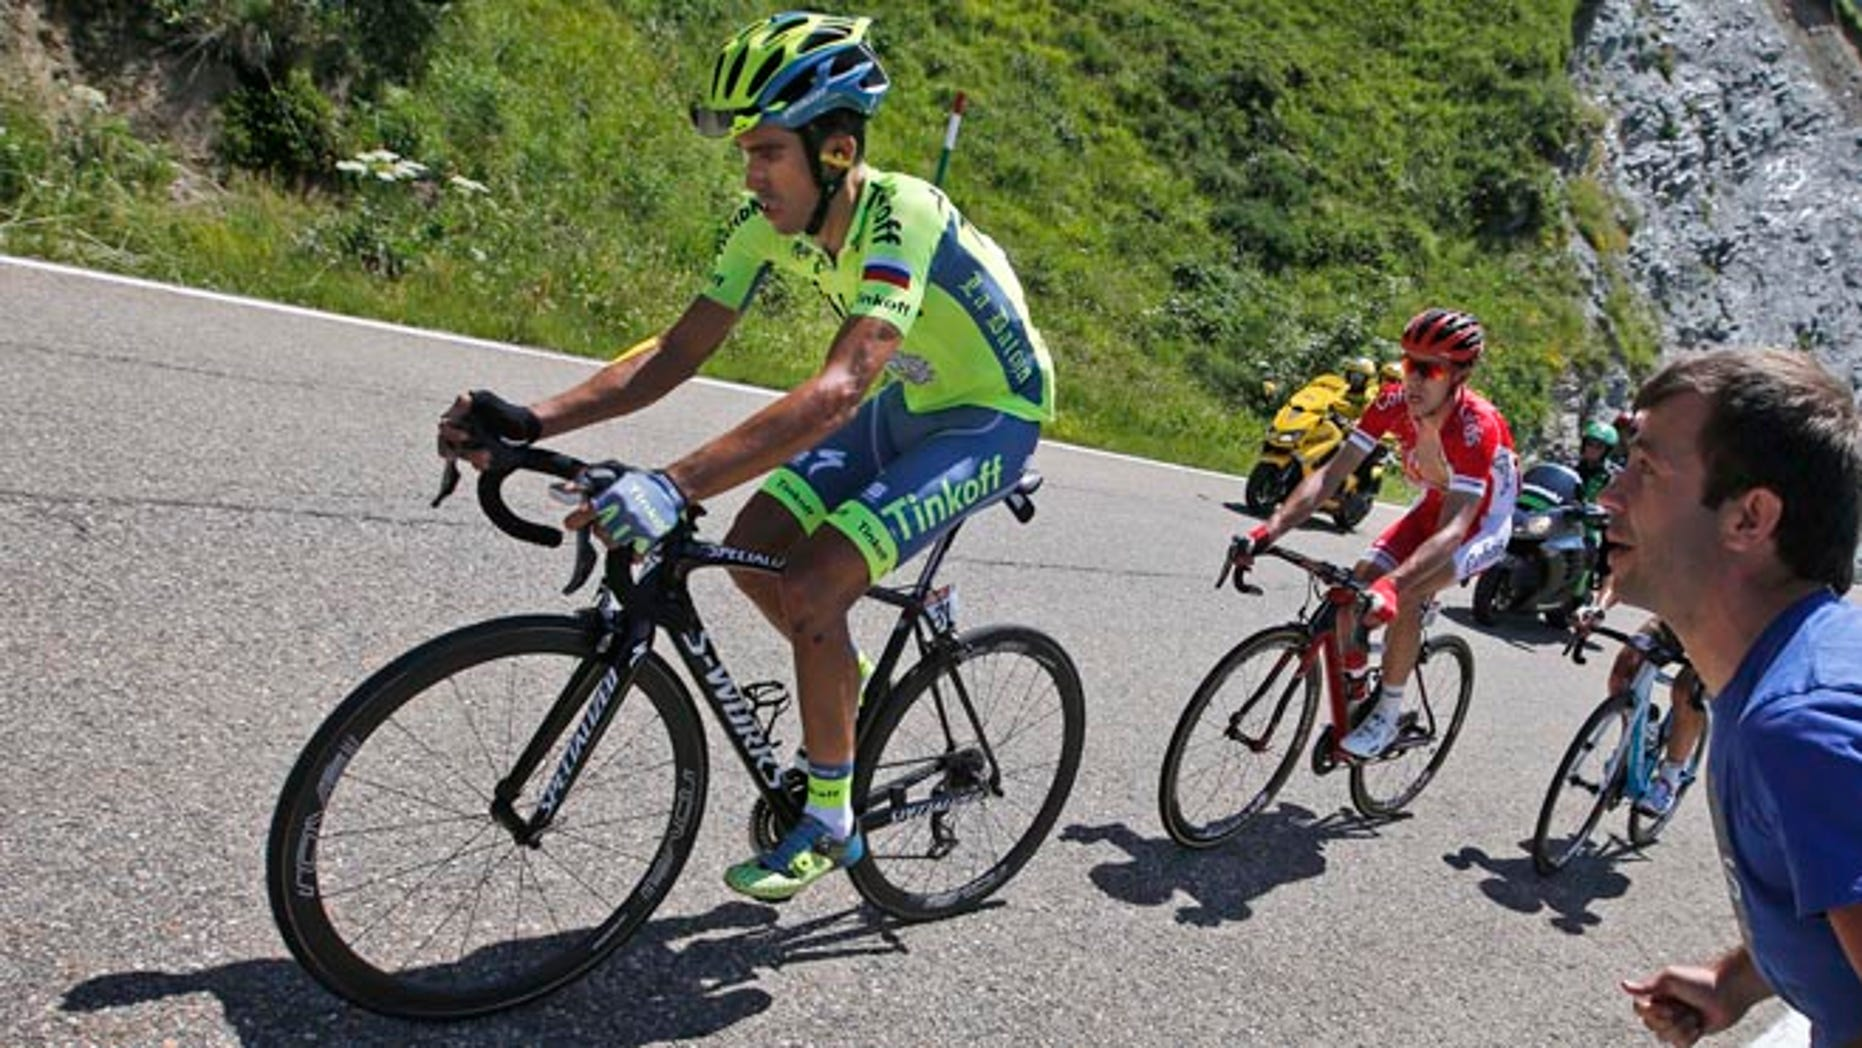 Spain's Alberto Contador, left, strains as he rides in the back of the pack with Franceâs Nicolas Edet, right, during the ninth stage of the Tour de France cycling race over 184.5 kilometers (114.3 miles) with start in Vielha Val d'Aran, Spain, and finish in Andorra Arcalis, Andorra, Sunday, July 10, 2016. (AP Photo/Christophe Ena)